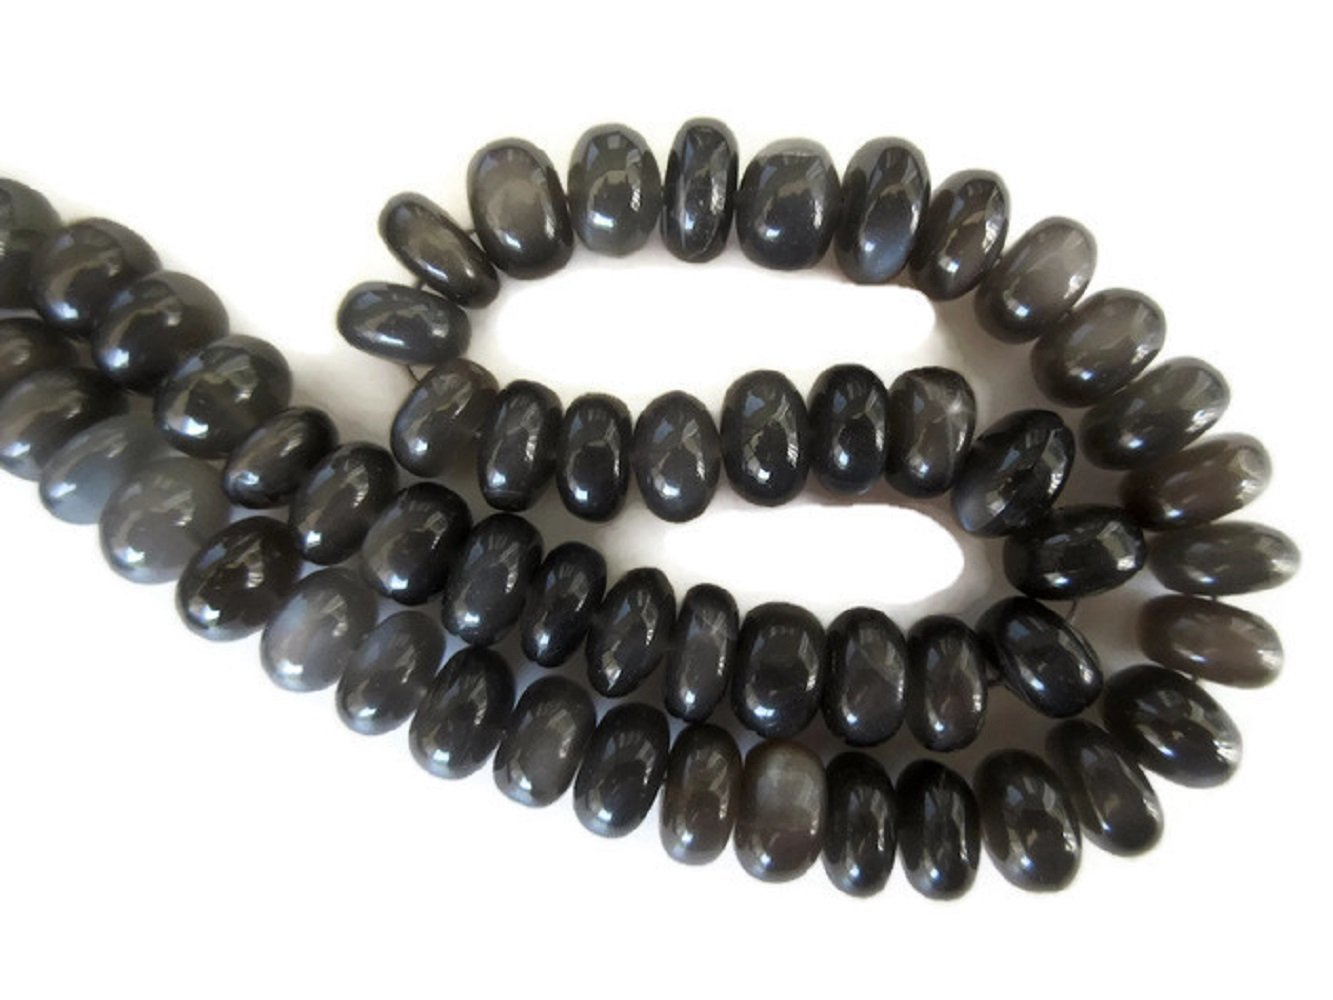 Natural AAA Grey Moonstone Smooth Rondelle Beads, 13mm To 14mm Beads, Grey Moonstone Jewelry, GDS999 (7 Inch)